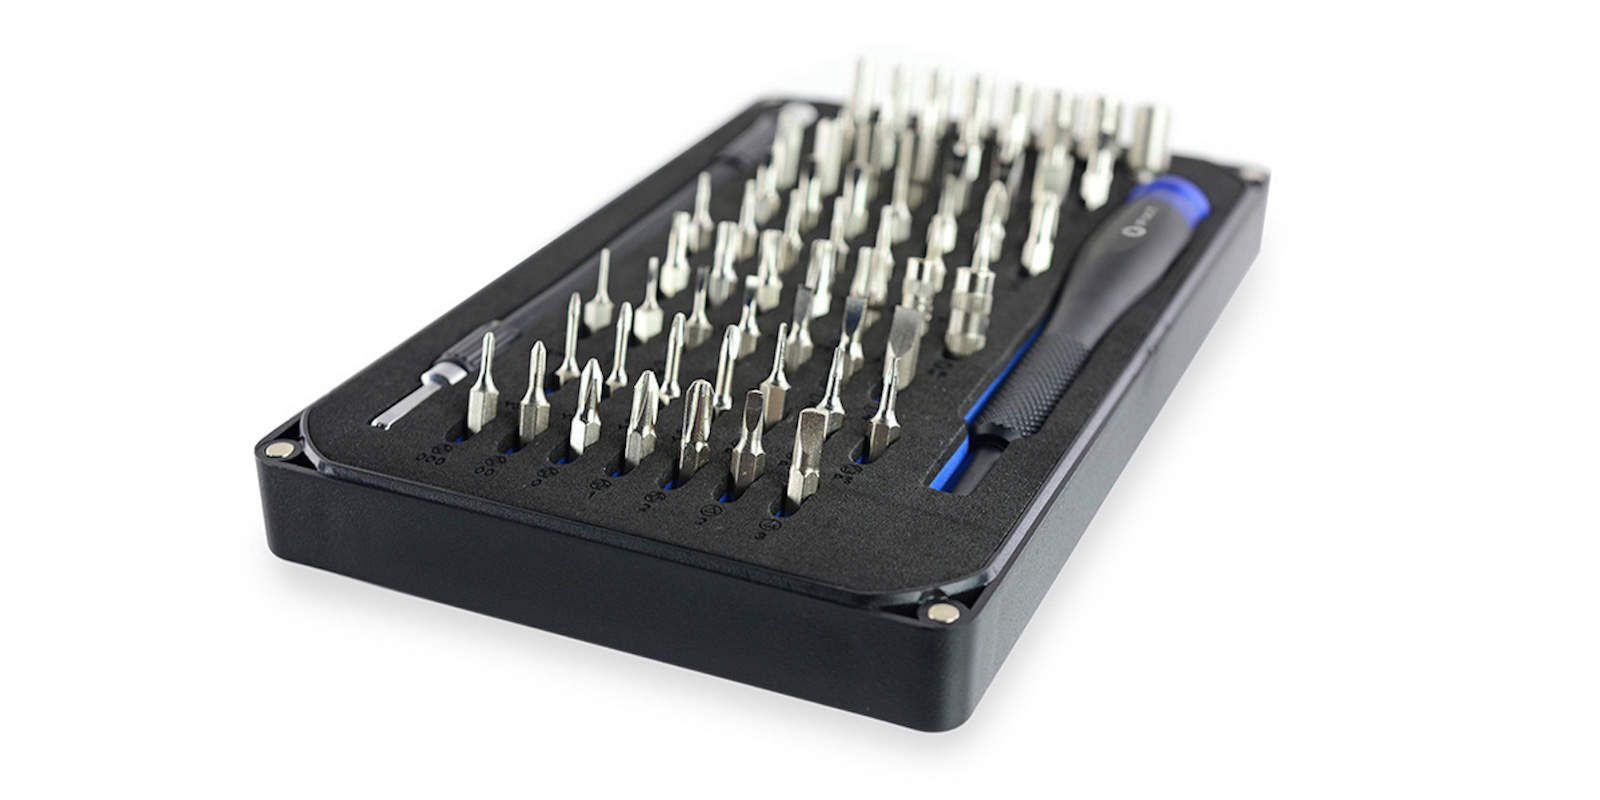 iFixit's 64-bit driver kit gives you the tools you need to repair your own electronics.